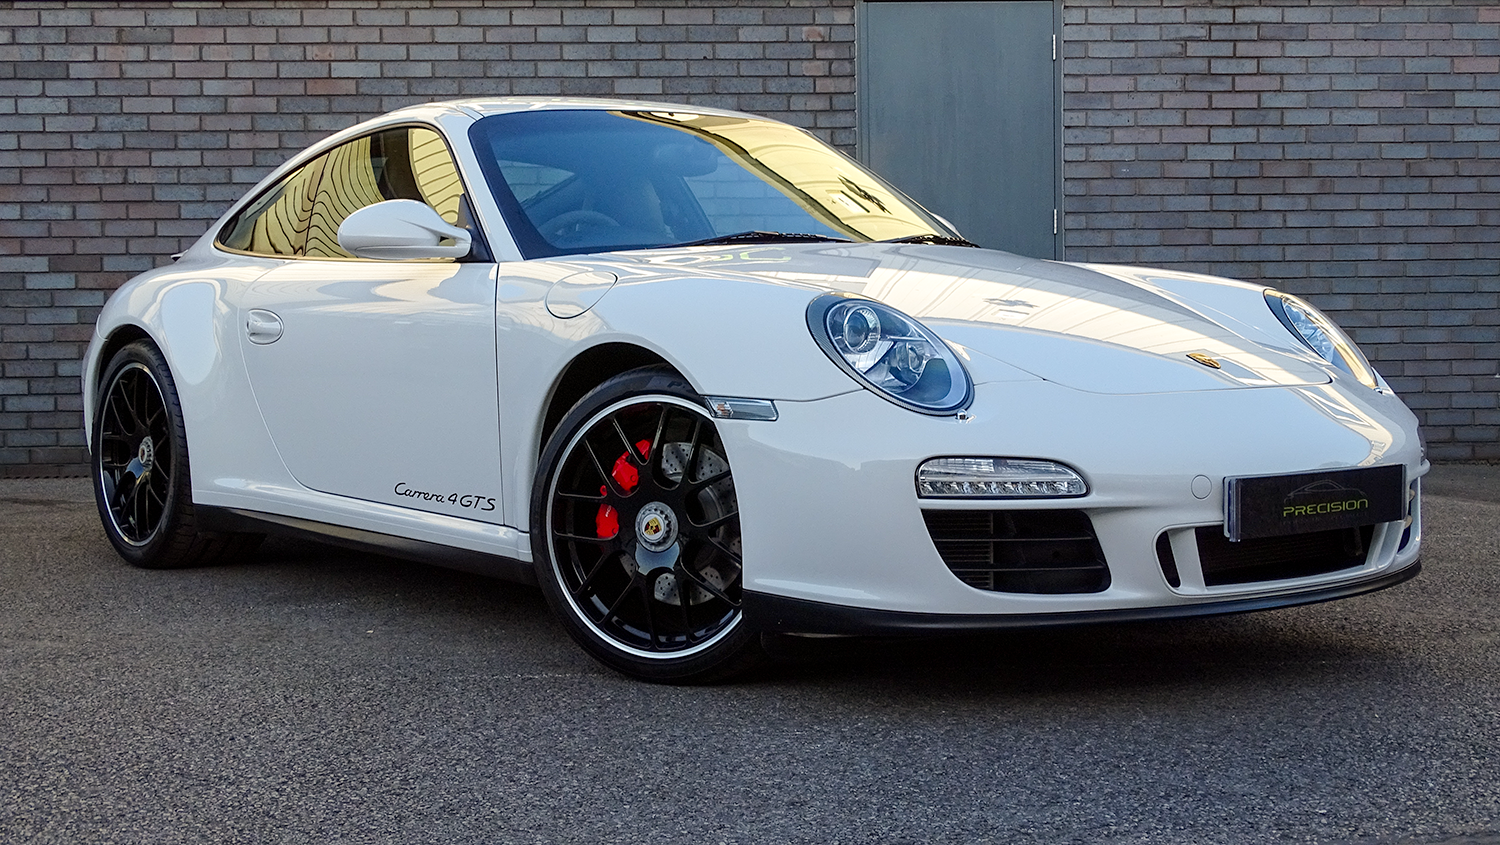 Porsche 911 Carrera 4 GTS - Colour: Carrera WhiteInterior: Black Leather/AlcantaraYear: 2012Mileage: 22,639Engine: 3.8 Litre Flat SixTransmission: 7-Speed PDKBody Style: Coupe (997)Fuel: PetrolDrivetrain: 4 wheel drive